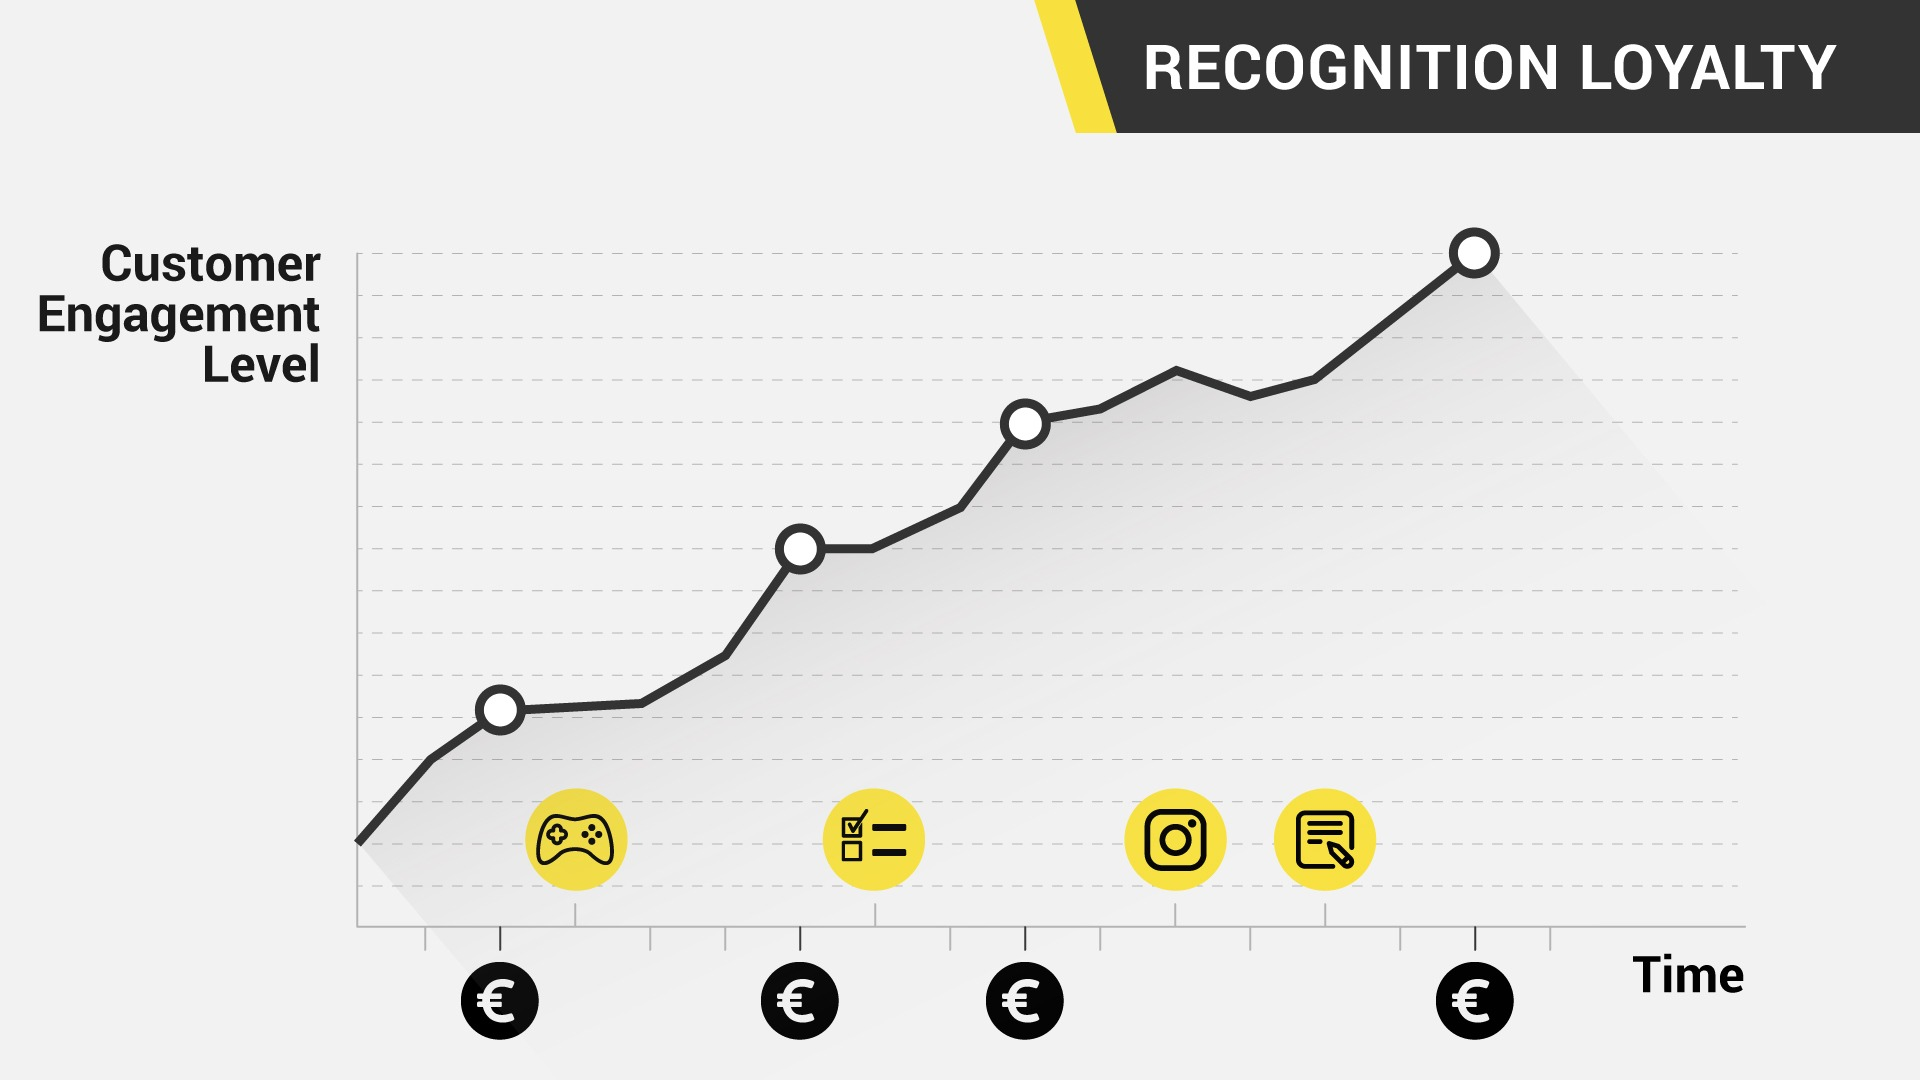 Recognition loyalty program chart